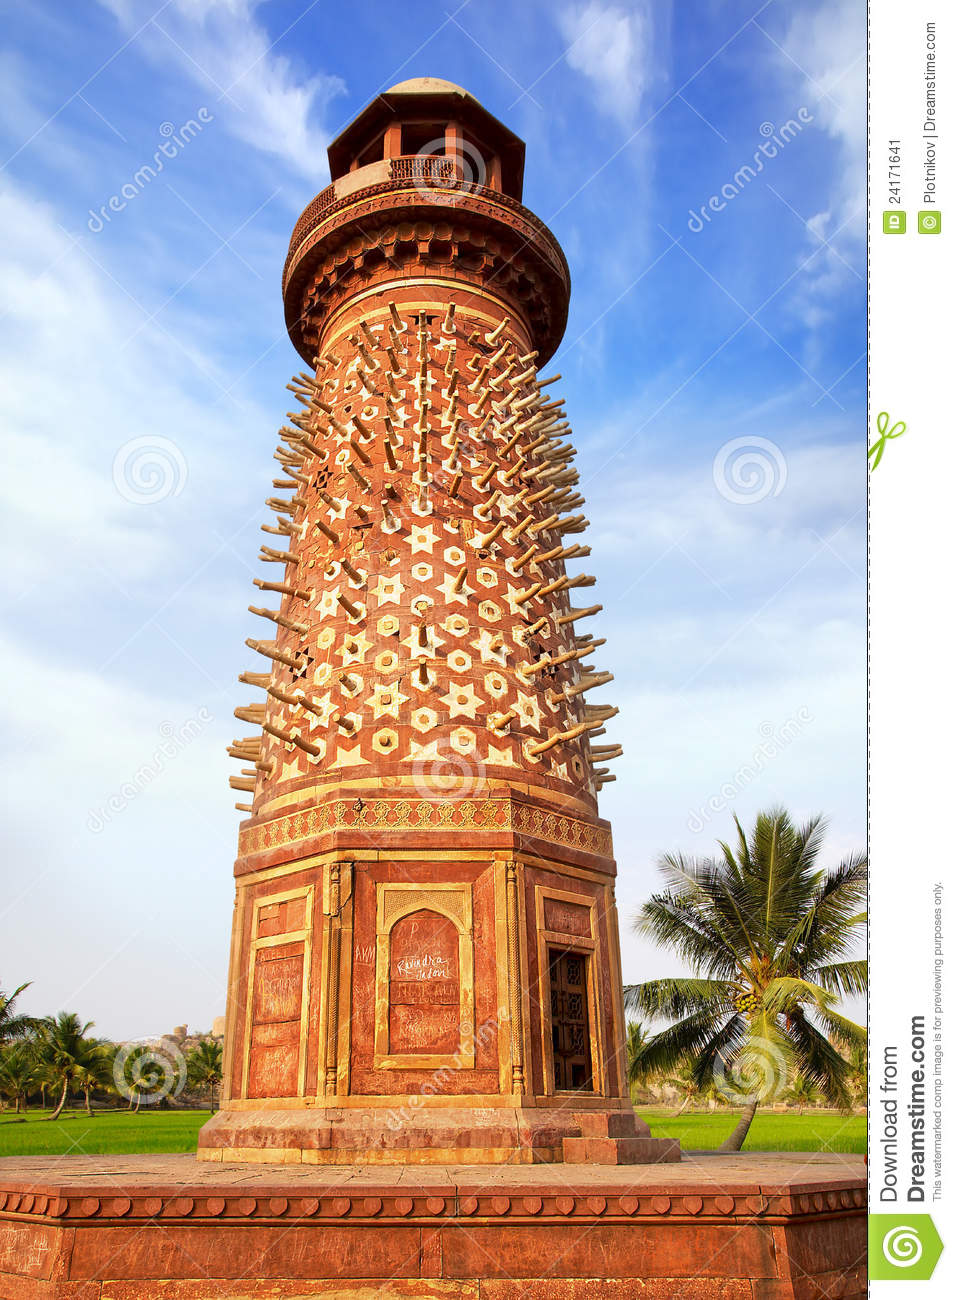 tower hindu personals Take a trip into an upgraded, more organized inbox with yahoo mail login and start exploring all the free, organizational tools for your email check out new themes, send gifs, find every photo you've ever sent or received.